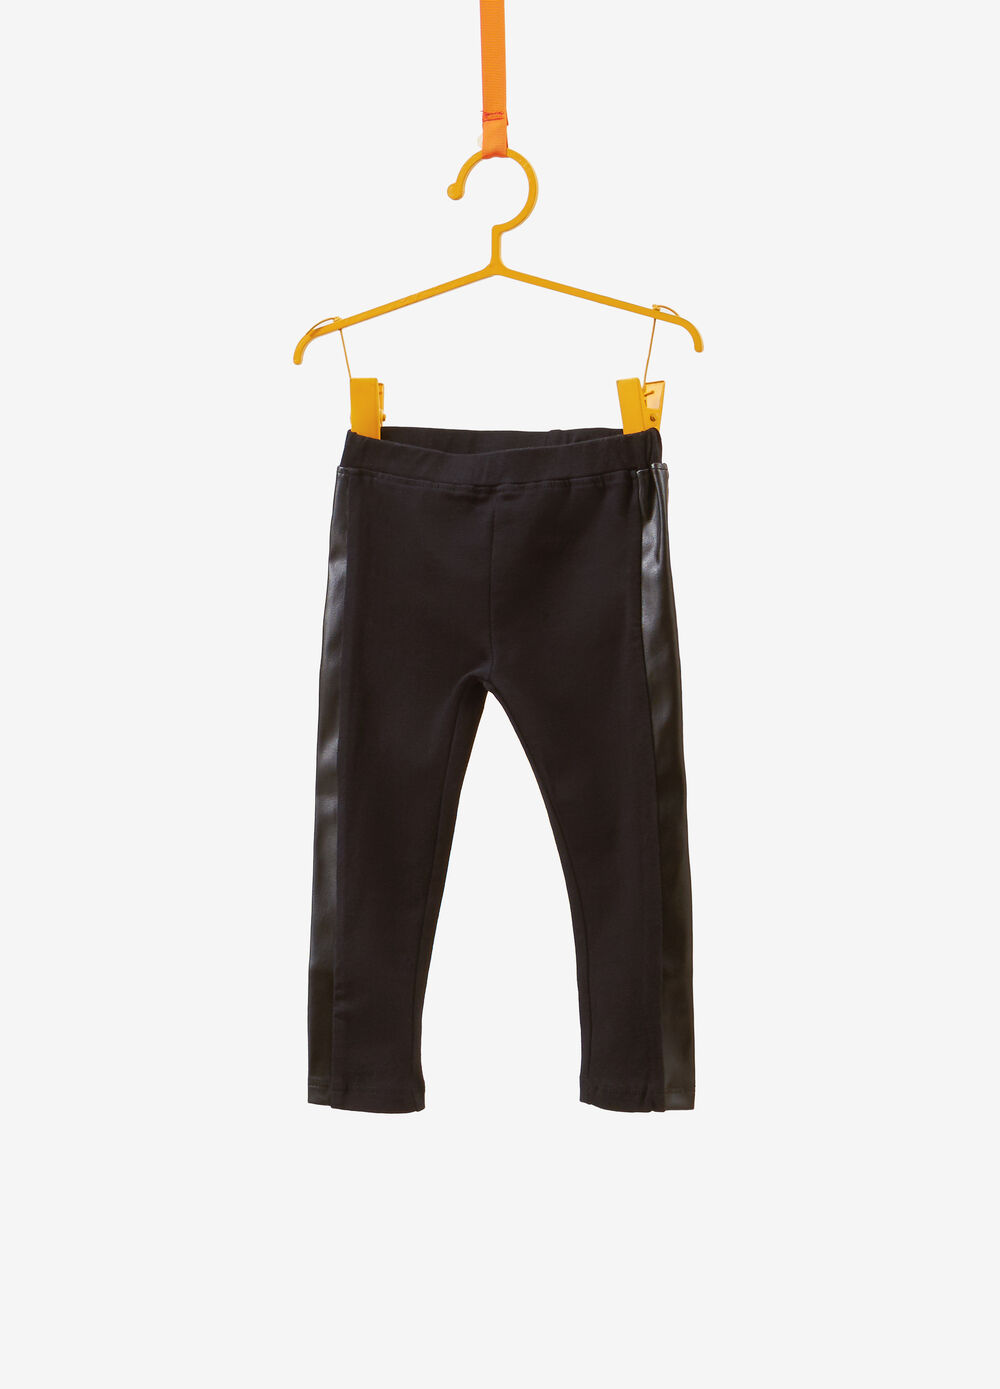 Cotton leggings with leather-look bands